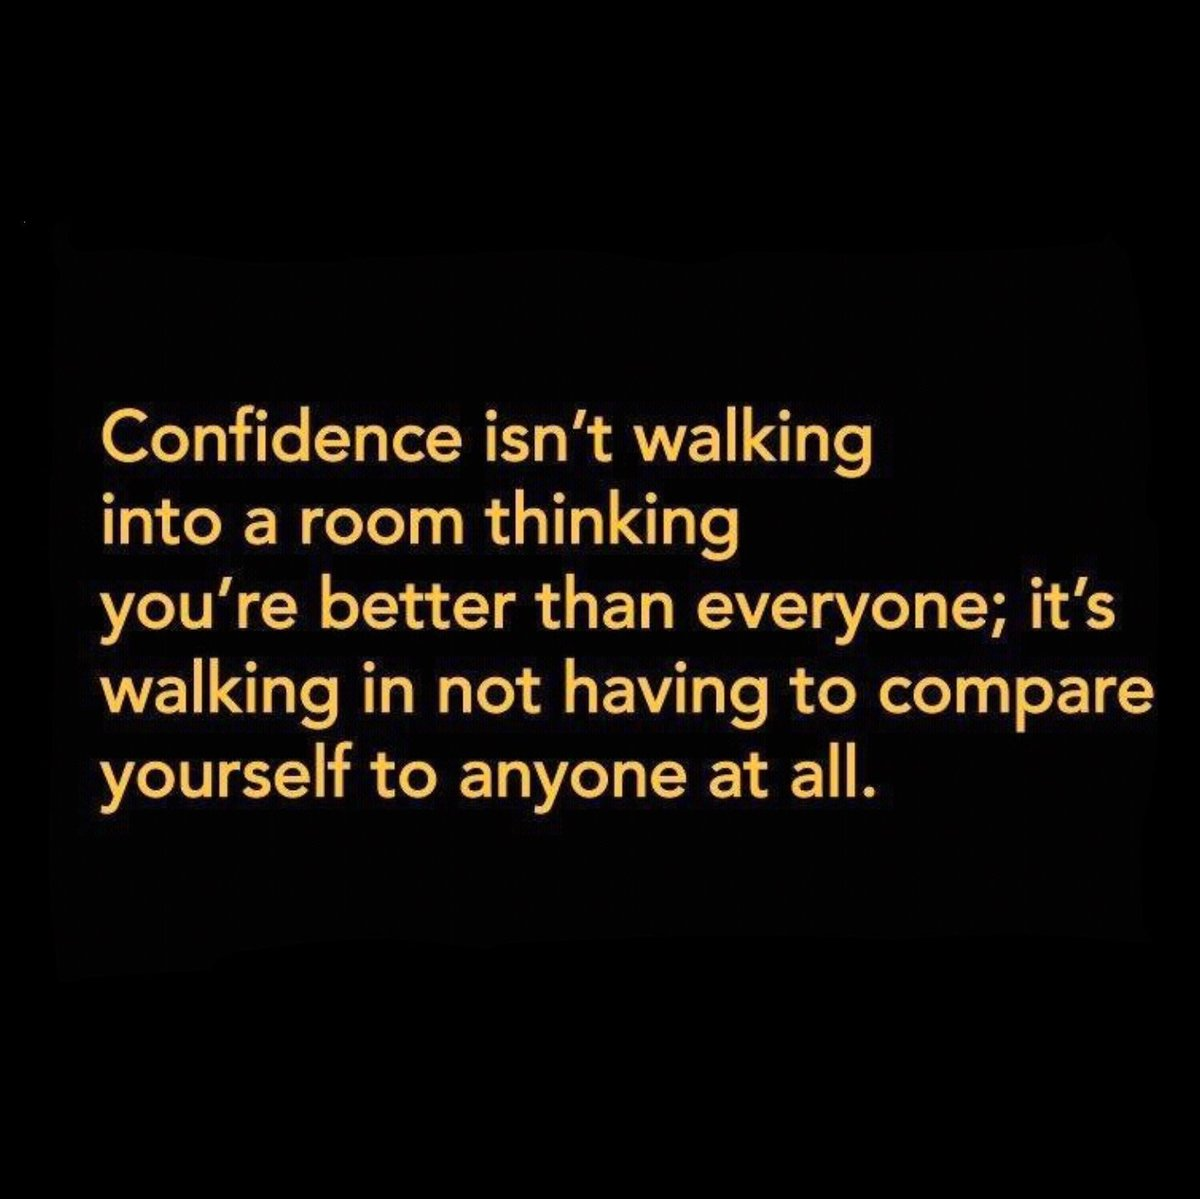 I love this. Don't compare yourself to others, just be awesome.  #ConfidenceClub  #TruthTuesday https://t.co/KxCUokIgy7